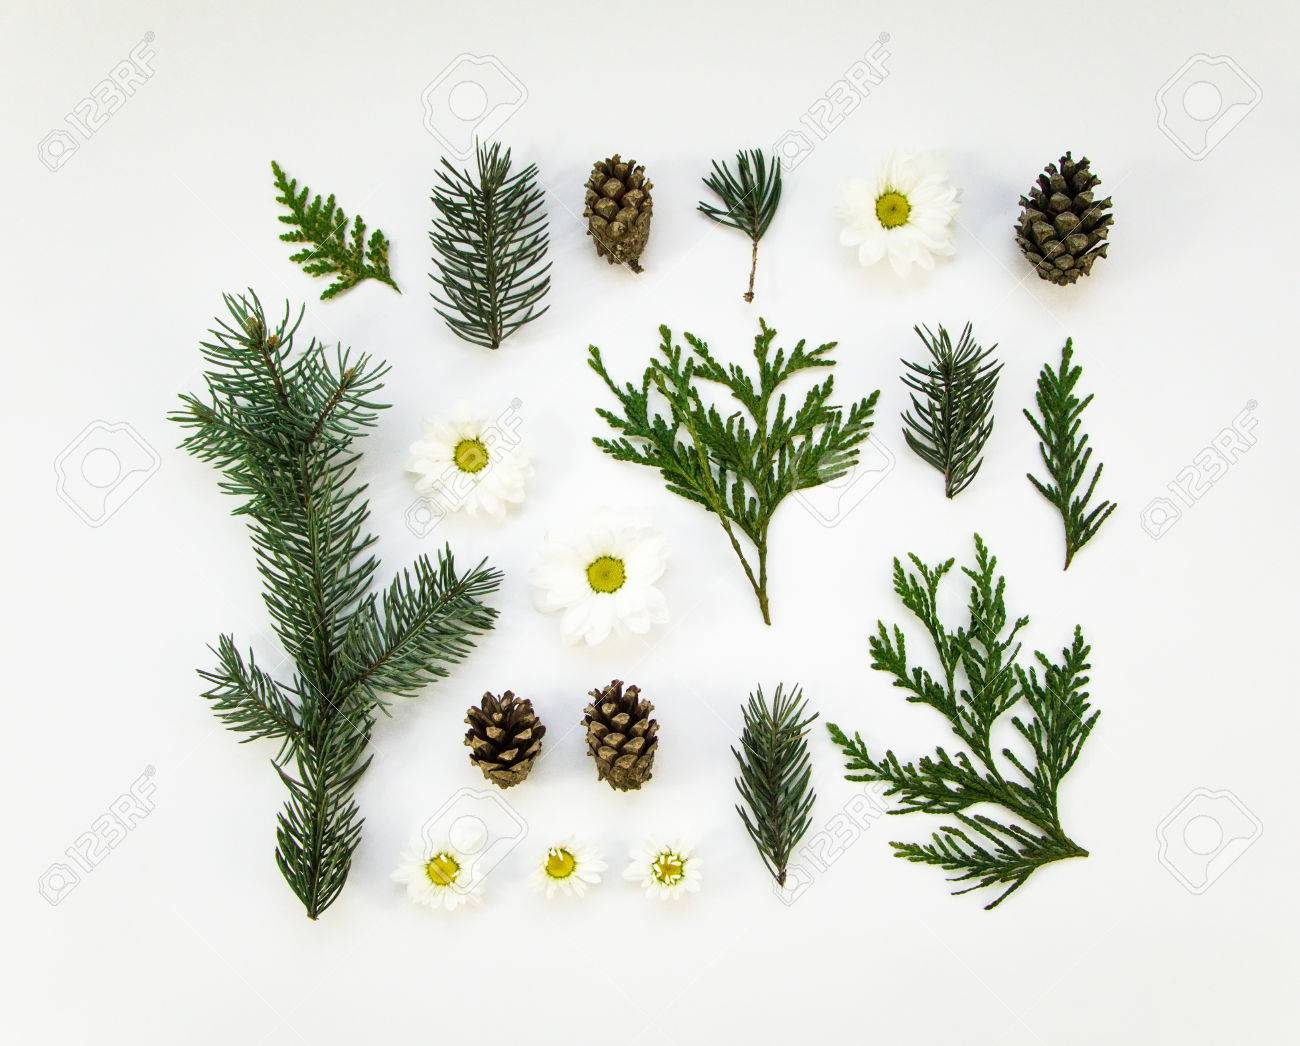 Creative natural layout of winter plants parts on white background creative natural layout of winter plants parts on white background thuja fir tree izmirmasajfo